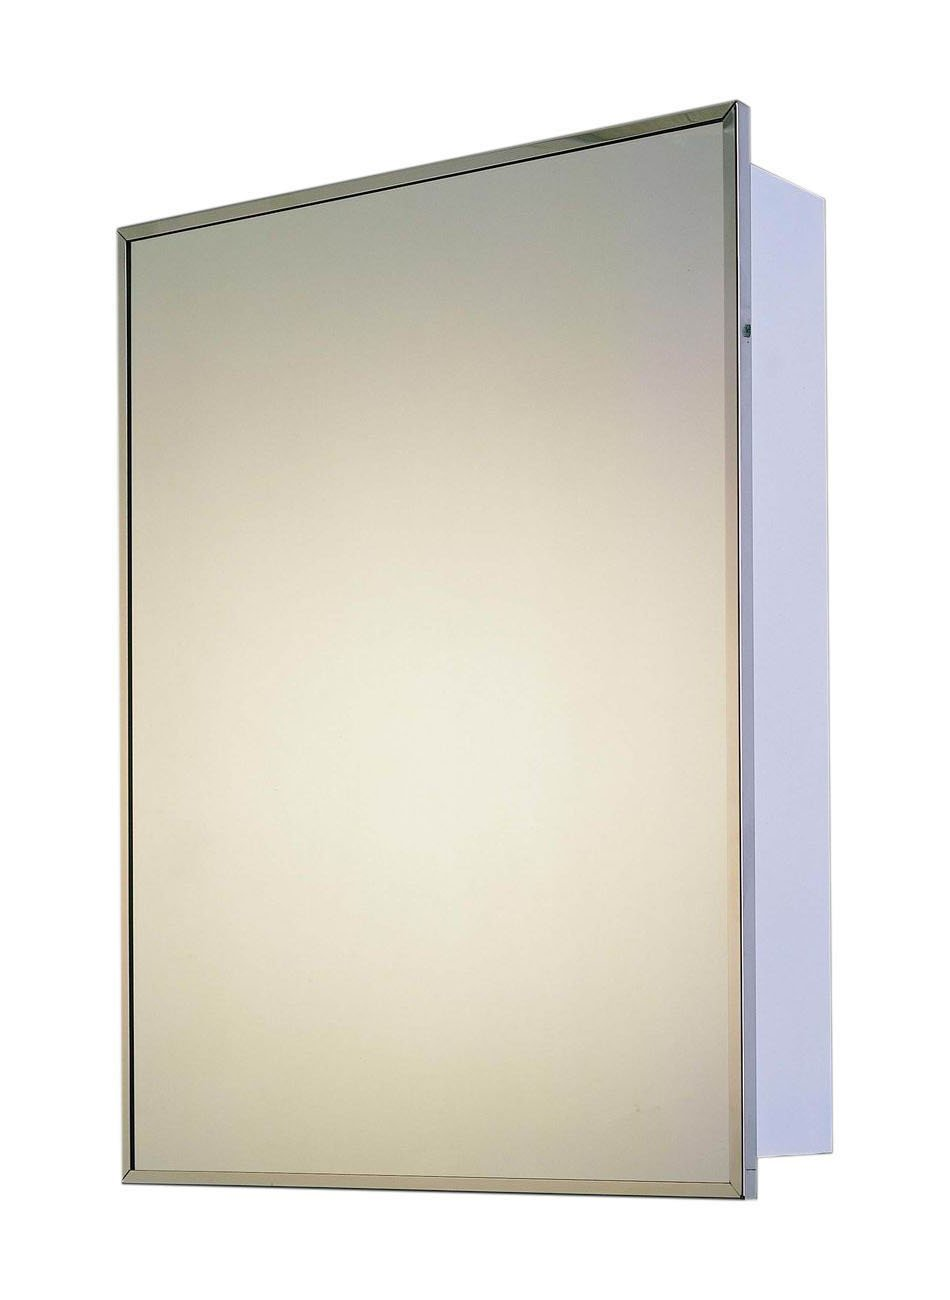 "ketcham Cabinets Deluxe Series Recessed Mounted Stainless Steel Framed Single Door Medicine Cabinet - 14""x20"" - Overall Size: 14"" W x 20"" H x 4-5/8"" D Glass Shelves: 2. Wall Opening: 12"" W x 18"" H x 3"" D Full length piano hinge. Cabinets can be inverted for right or left swing installation - shelves-cabinets, bathroom-fixtures-hardware, bathroom - 51yzFmaP5UL -"